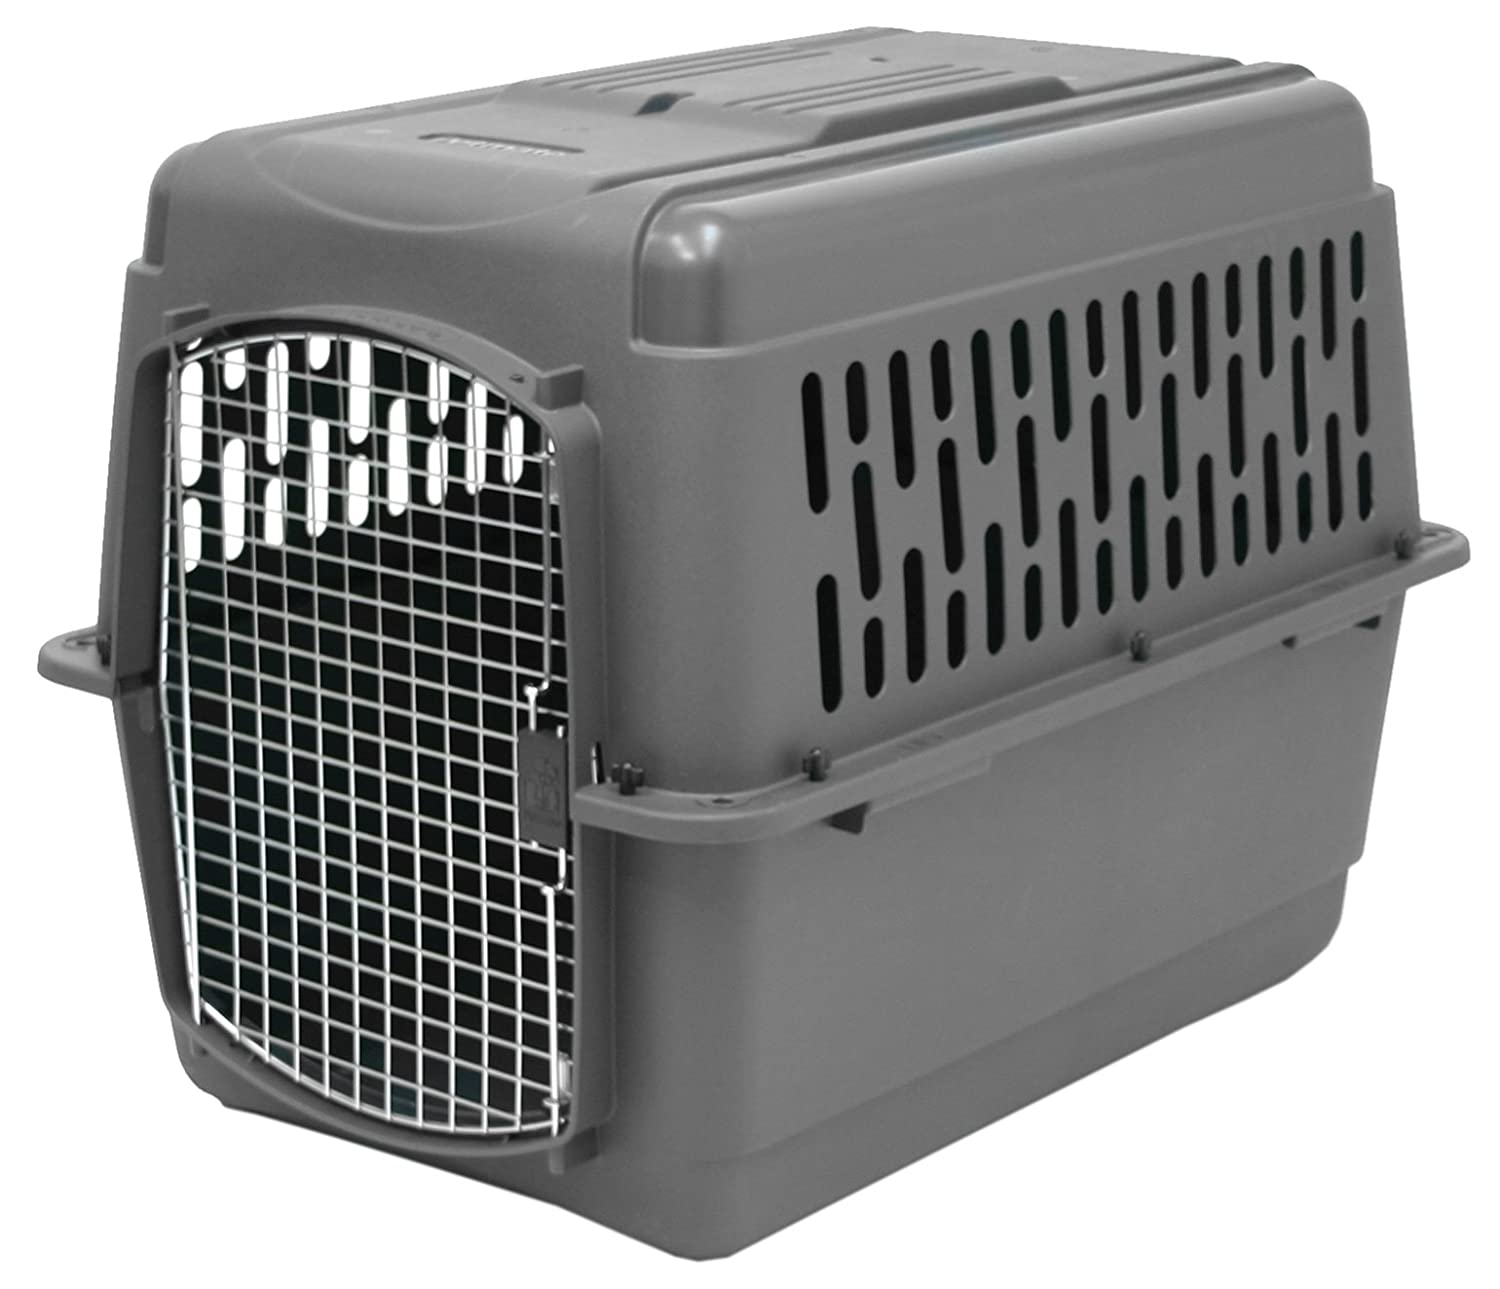 amazoncom  petmate  pet porter  dog crate  dark gray  x  - amazoncom  petmate  pet porter  dog crate  dark gray  xlarge  dogcage petmate  pet supplies